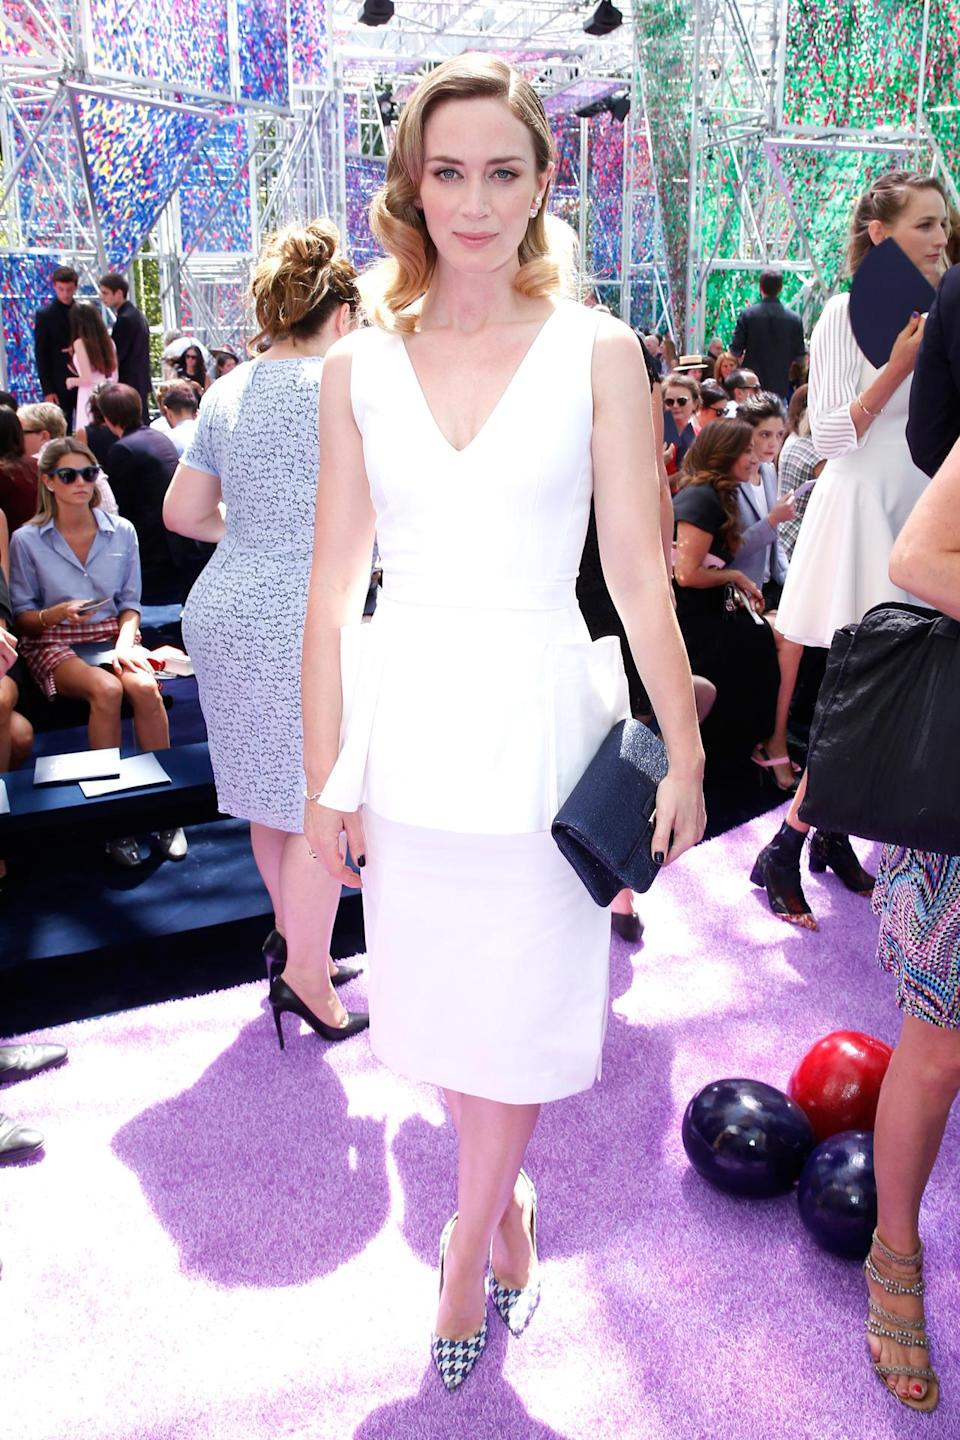 <p>The British actress arrived to the Christian Dior Haute Couture show in Paris looking effortlessly chic in a simple white dress from the brand. <br><br></p>